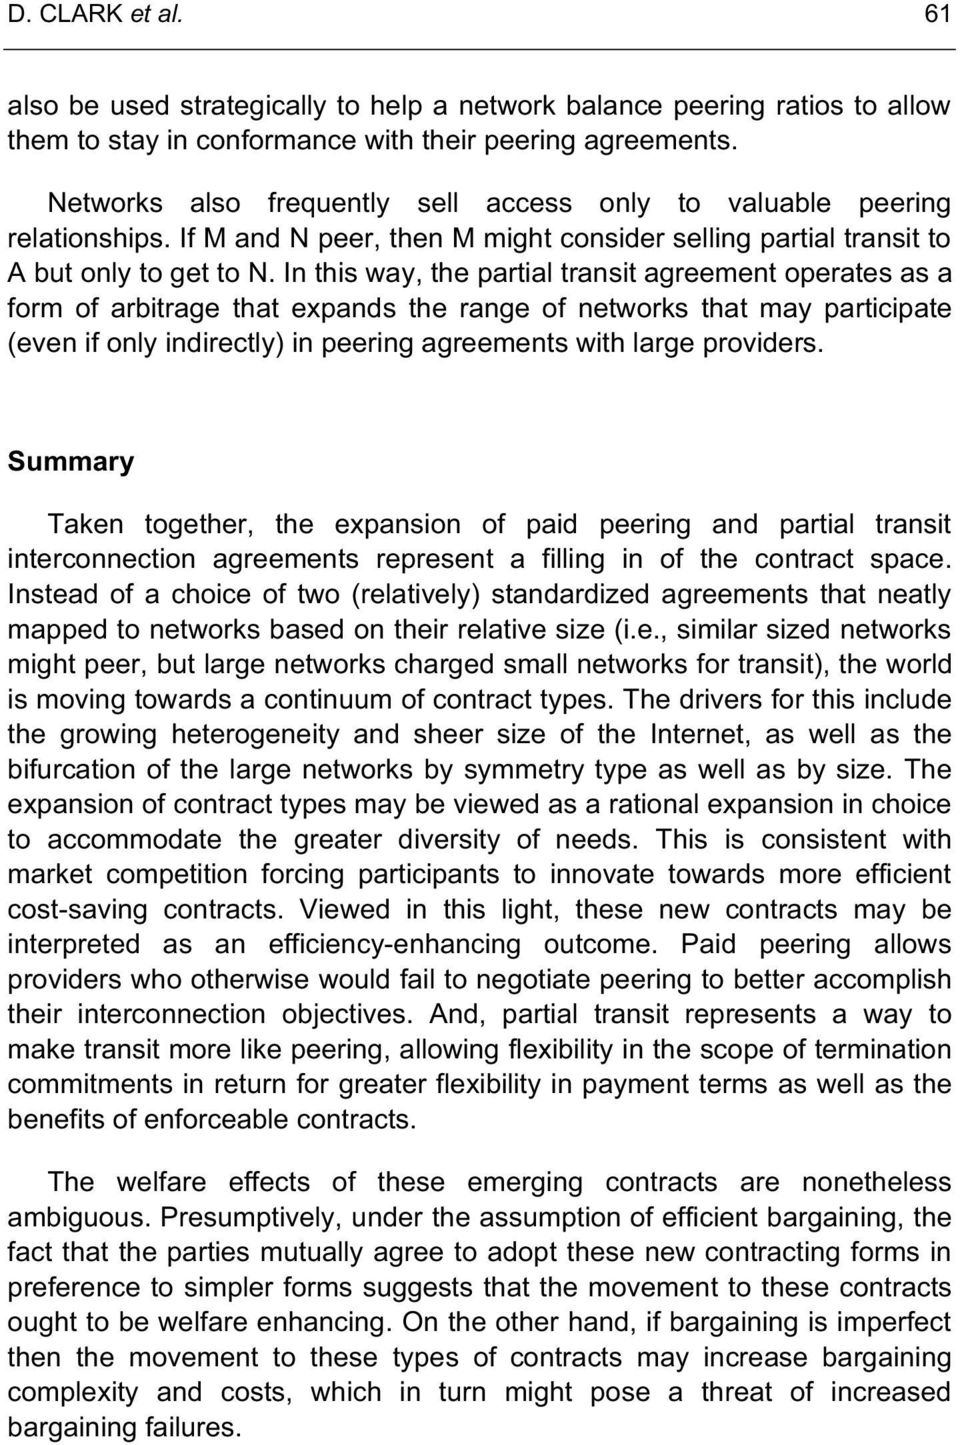 In this way, the partial transit agreement operates as a form of arbitrage that expands the range of networks that may participate (even if only indirectly) in peering agreements with large providers.